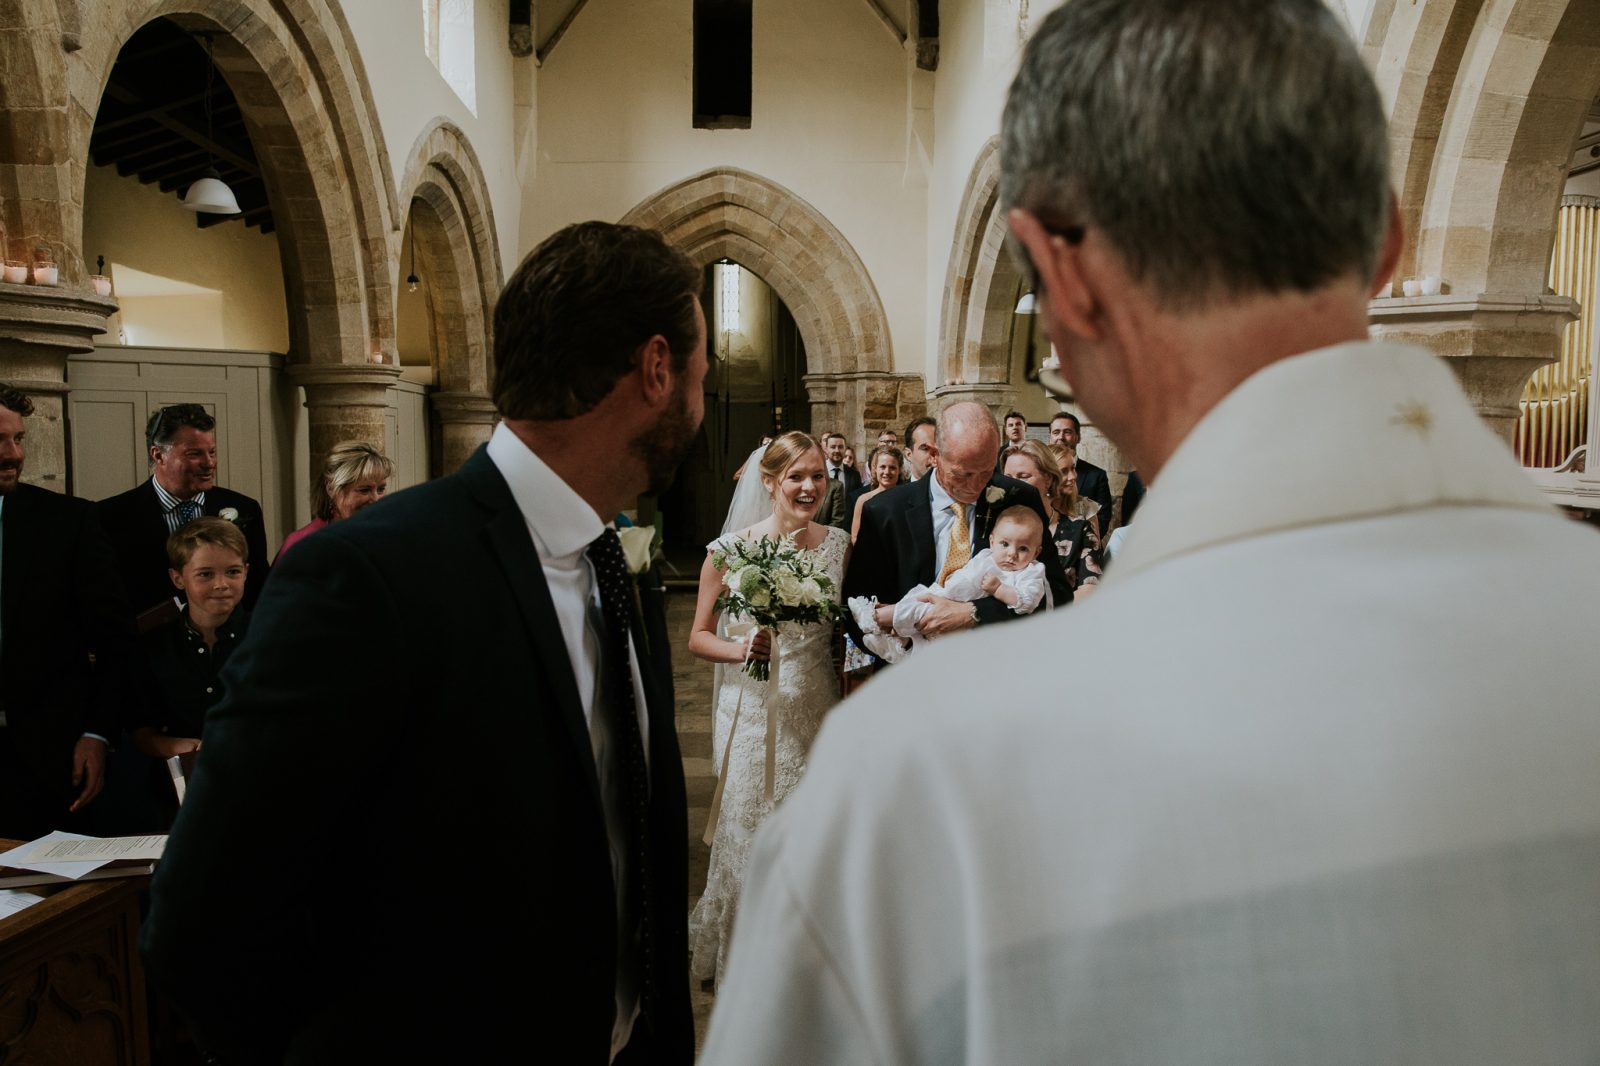 Surprise wedding christening